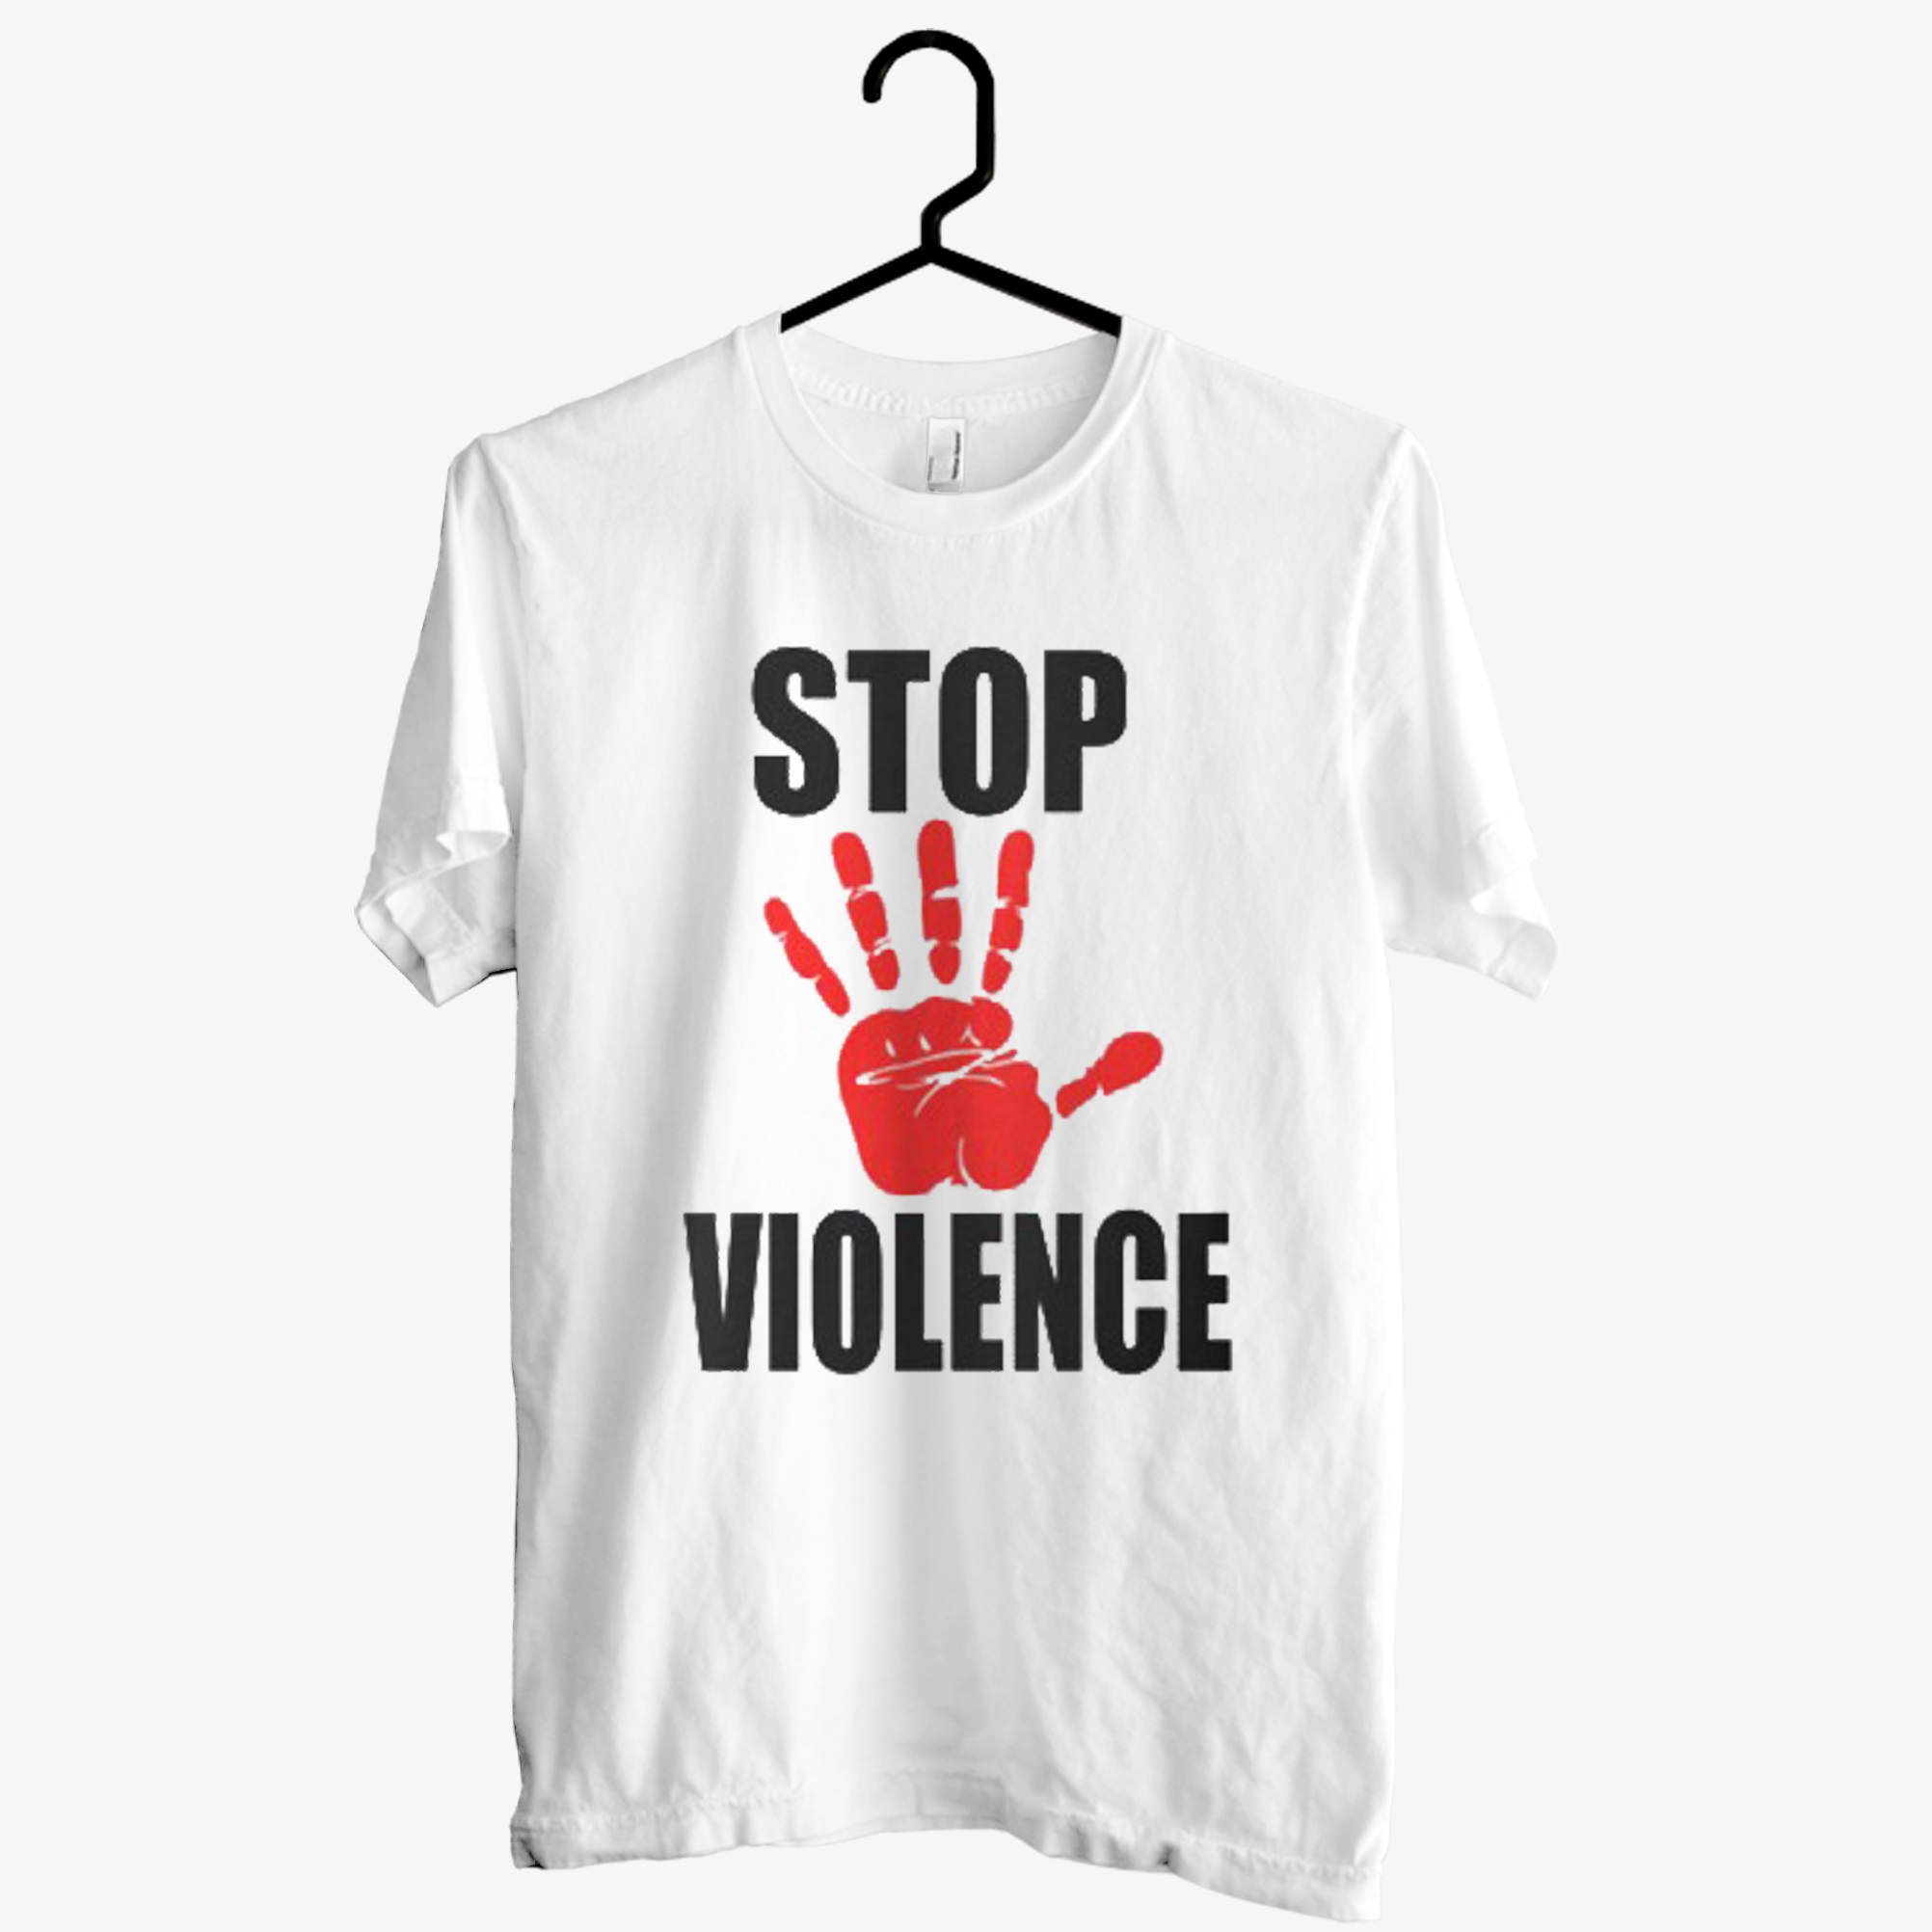 'International Day of Non Violence T shirt